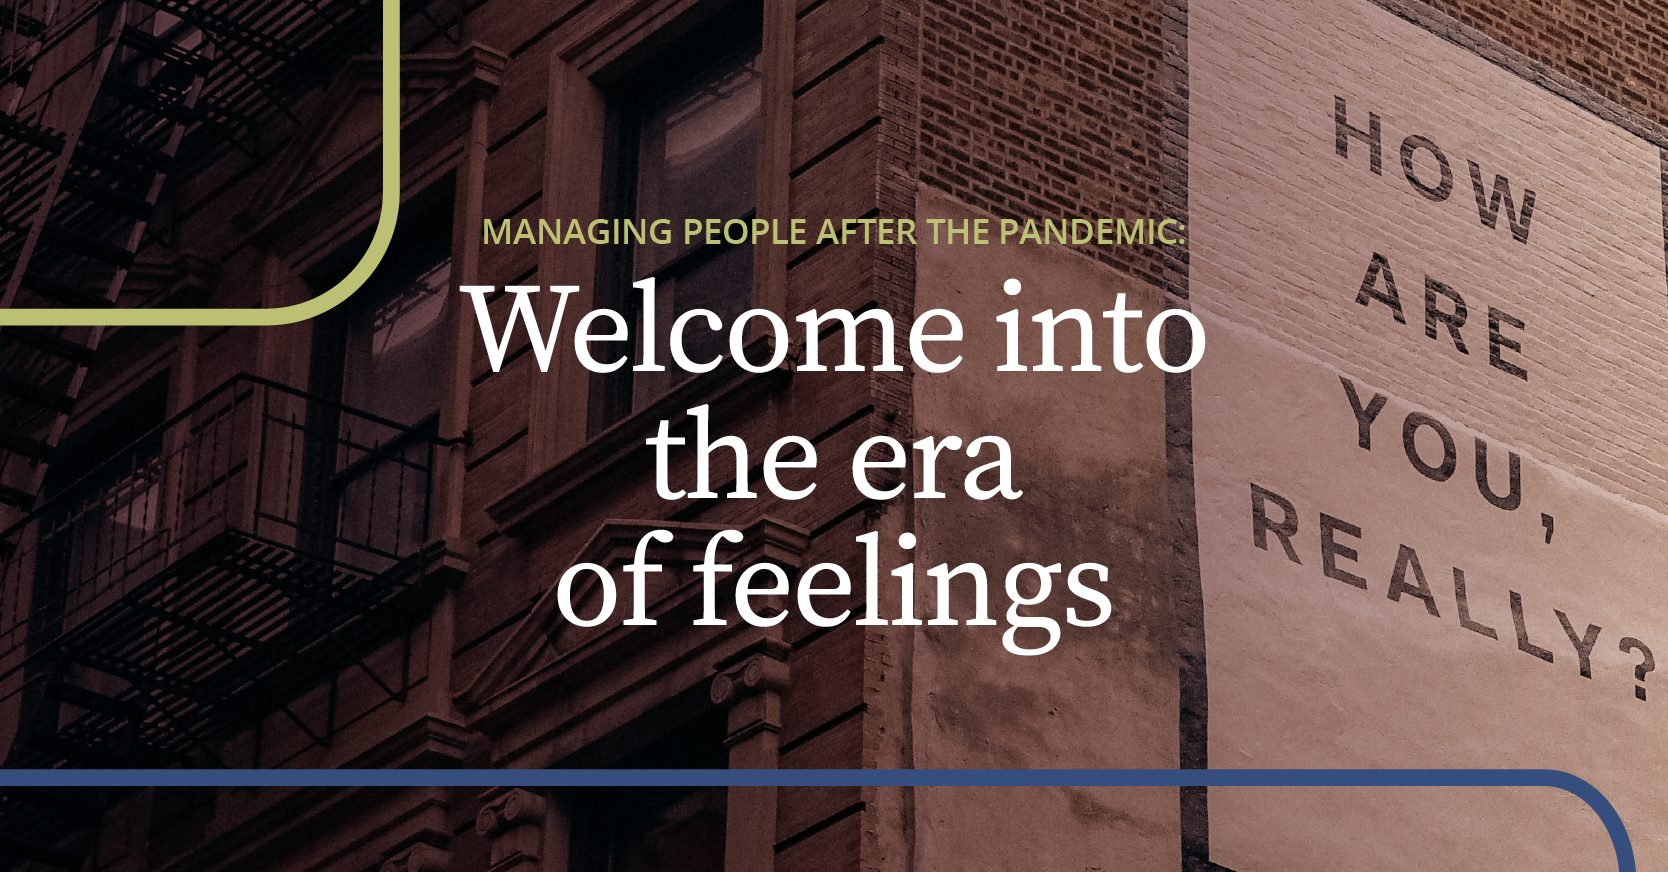 Managing people after the pandemic: welcome into the era of feelings